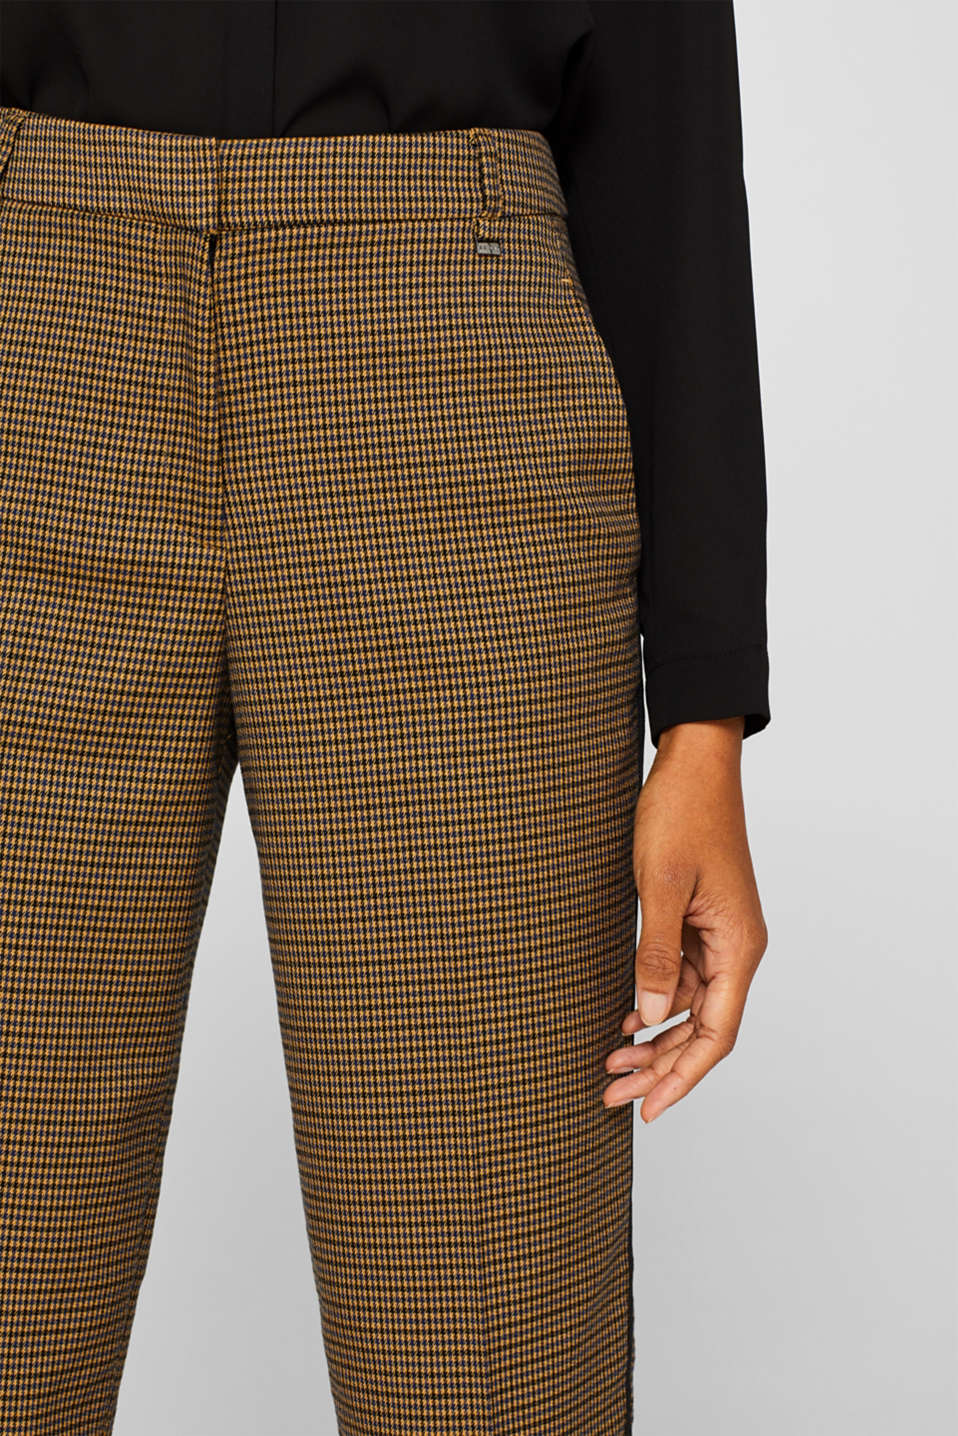 Stretch trousers with a houndstooth pattern and racing stripes, BARK, detail image number 2